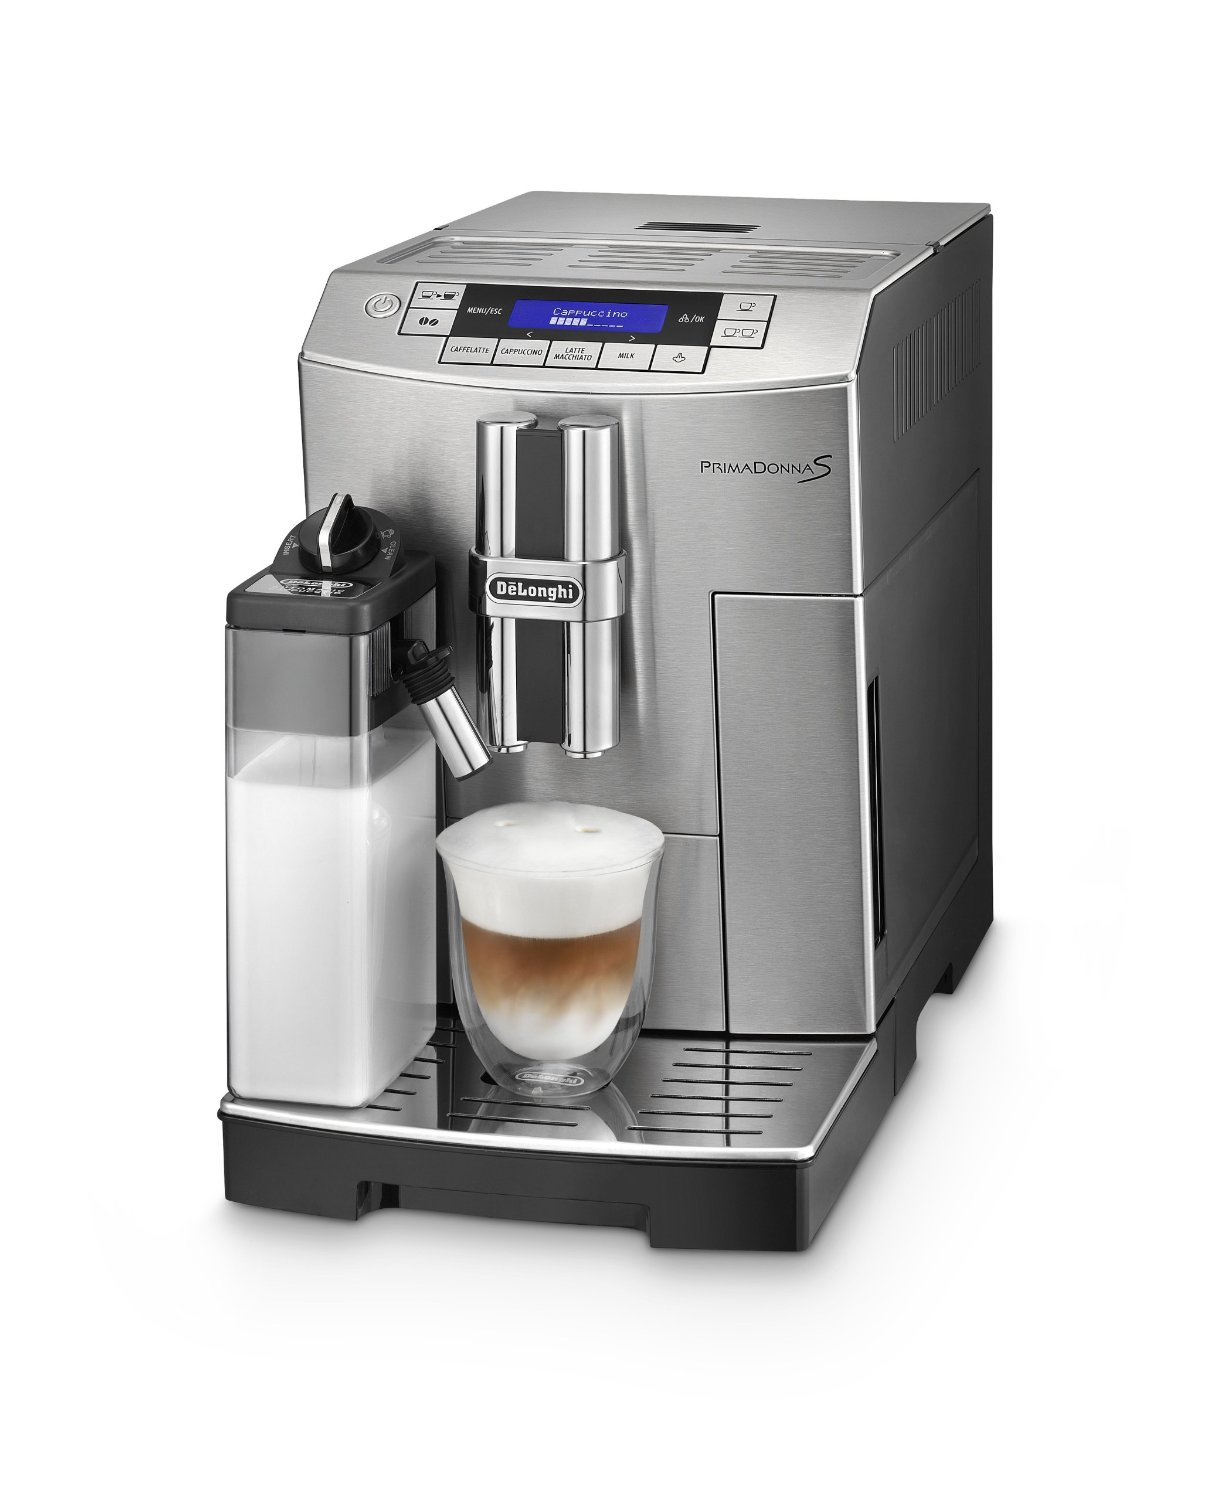 delonghi ecam mb primadonna s kaffeevollautomat neu ovp ebay. Black Bedroom Furniture Sets. Home Design Ideas